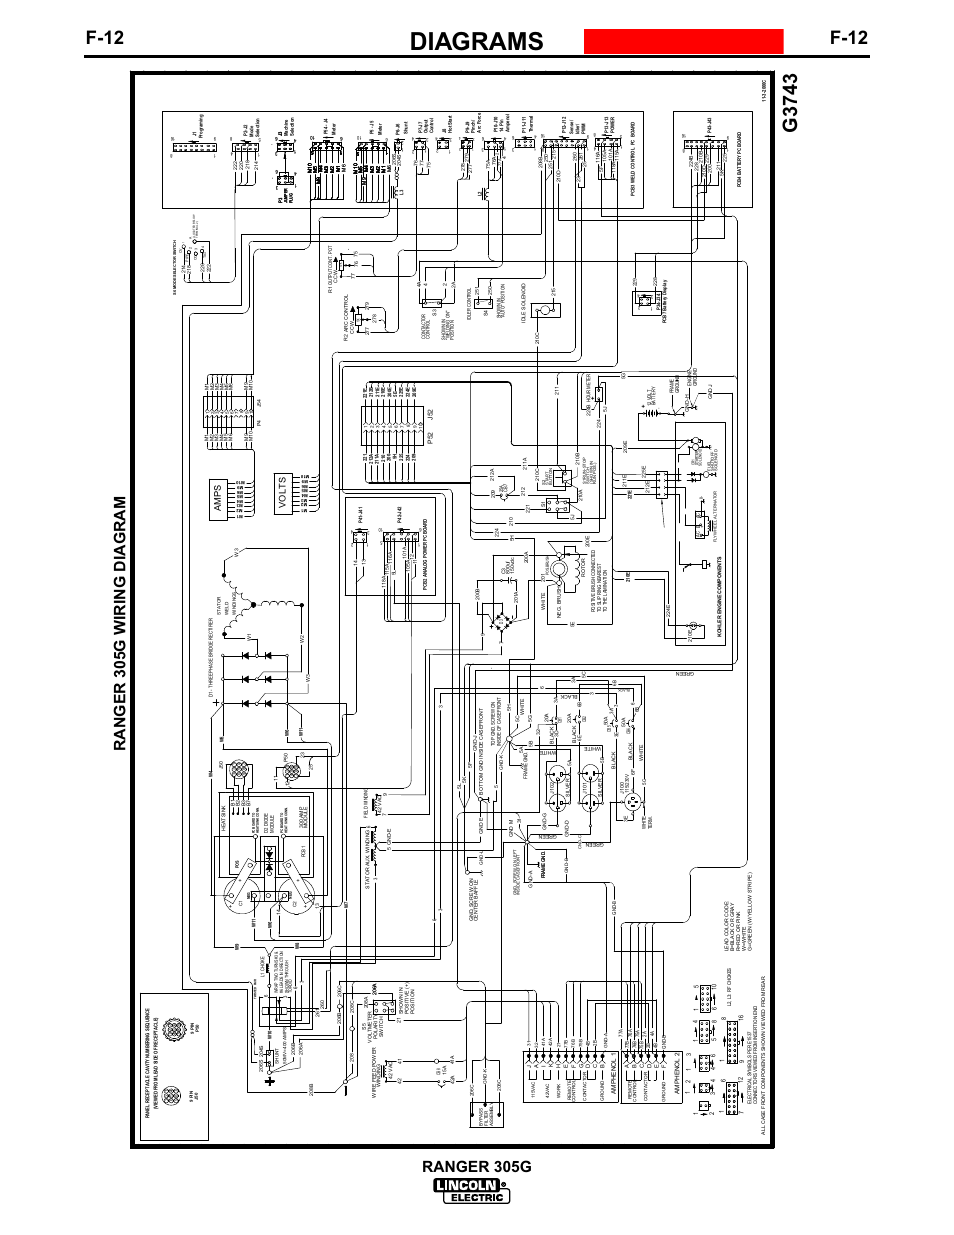 Lincoln Ranger Welder Wiring Diagram Electricity Schematics 305d Circuit Symbols U2022 Rh Veturecapitaltrust Co Hobart Sa 200 Schematic